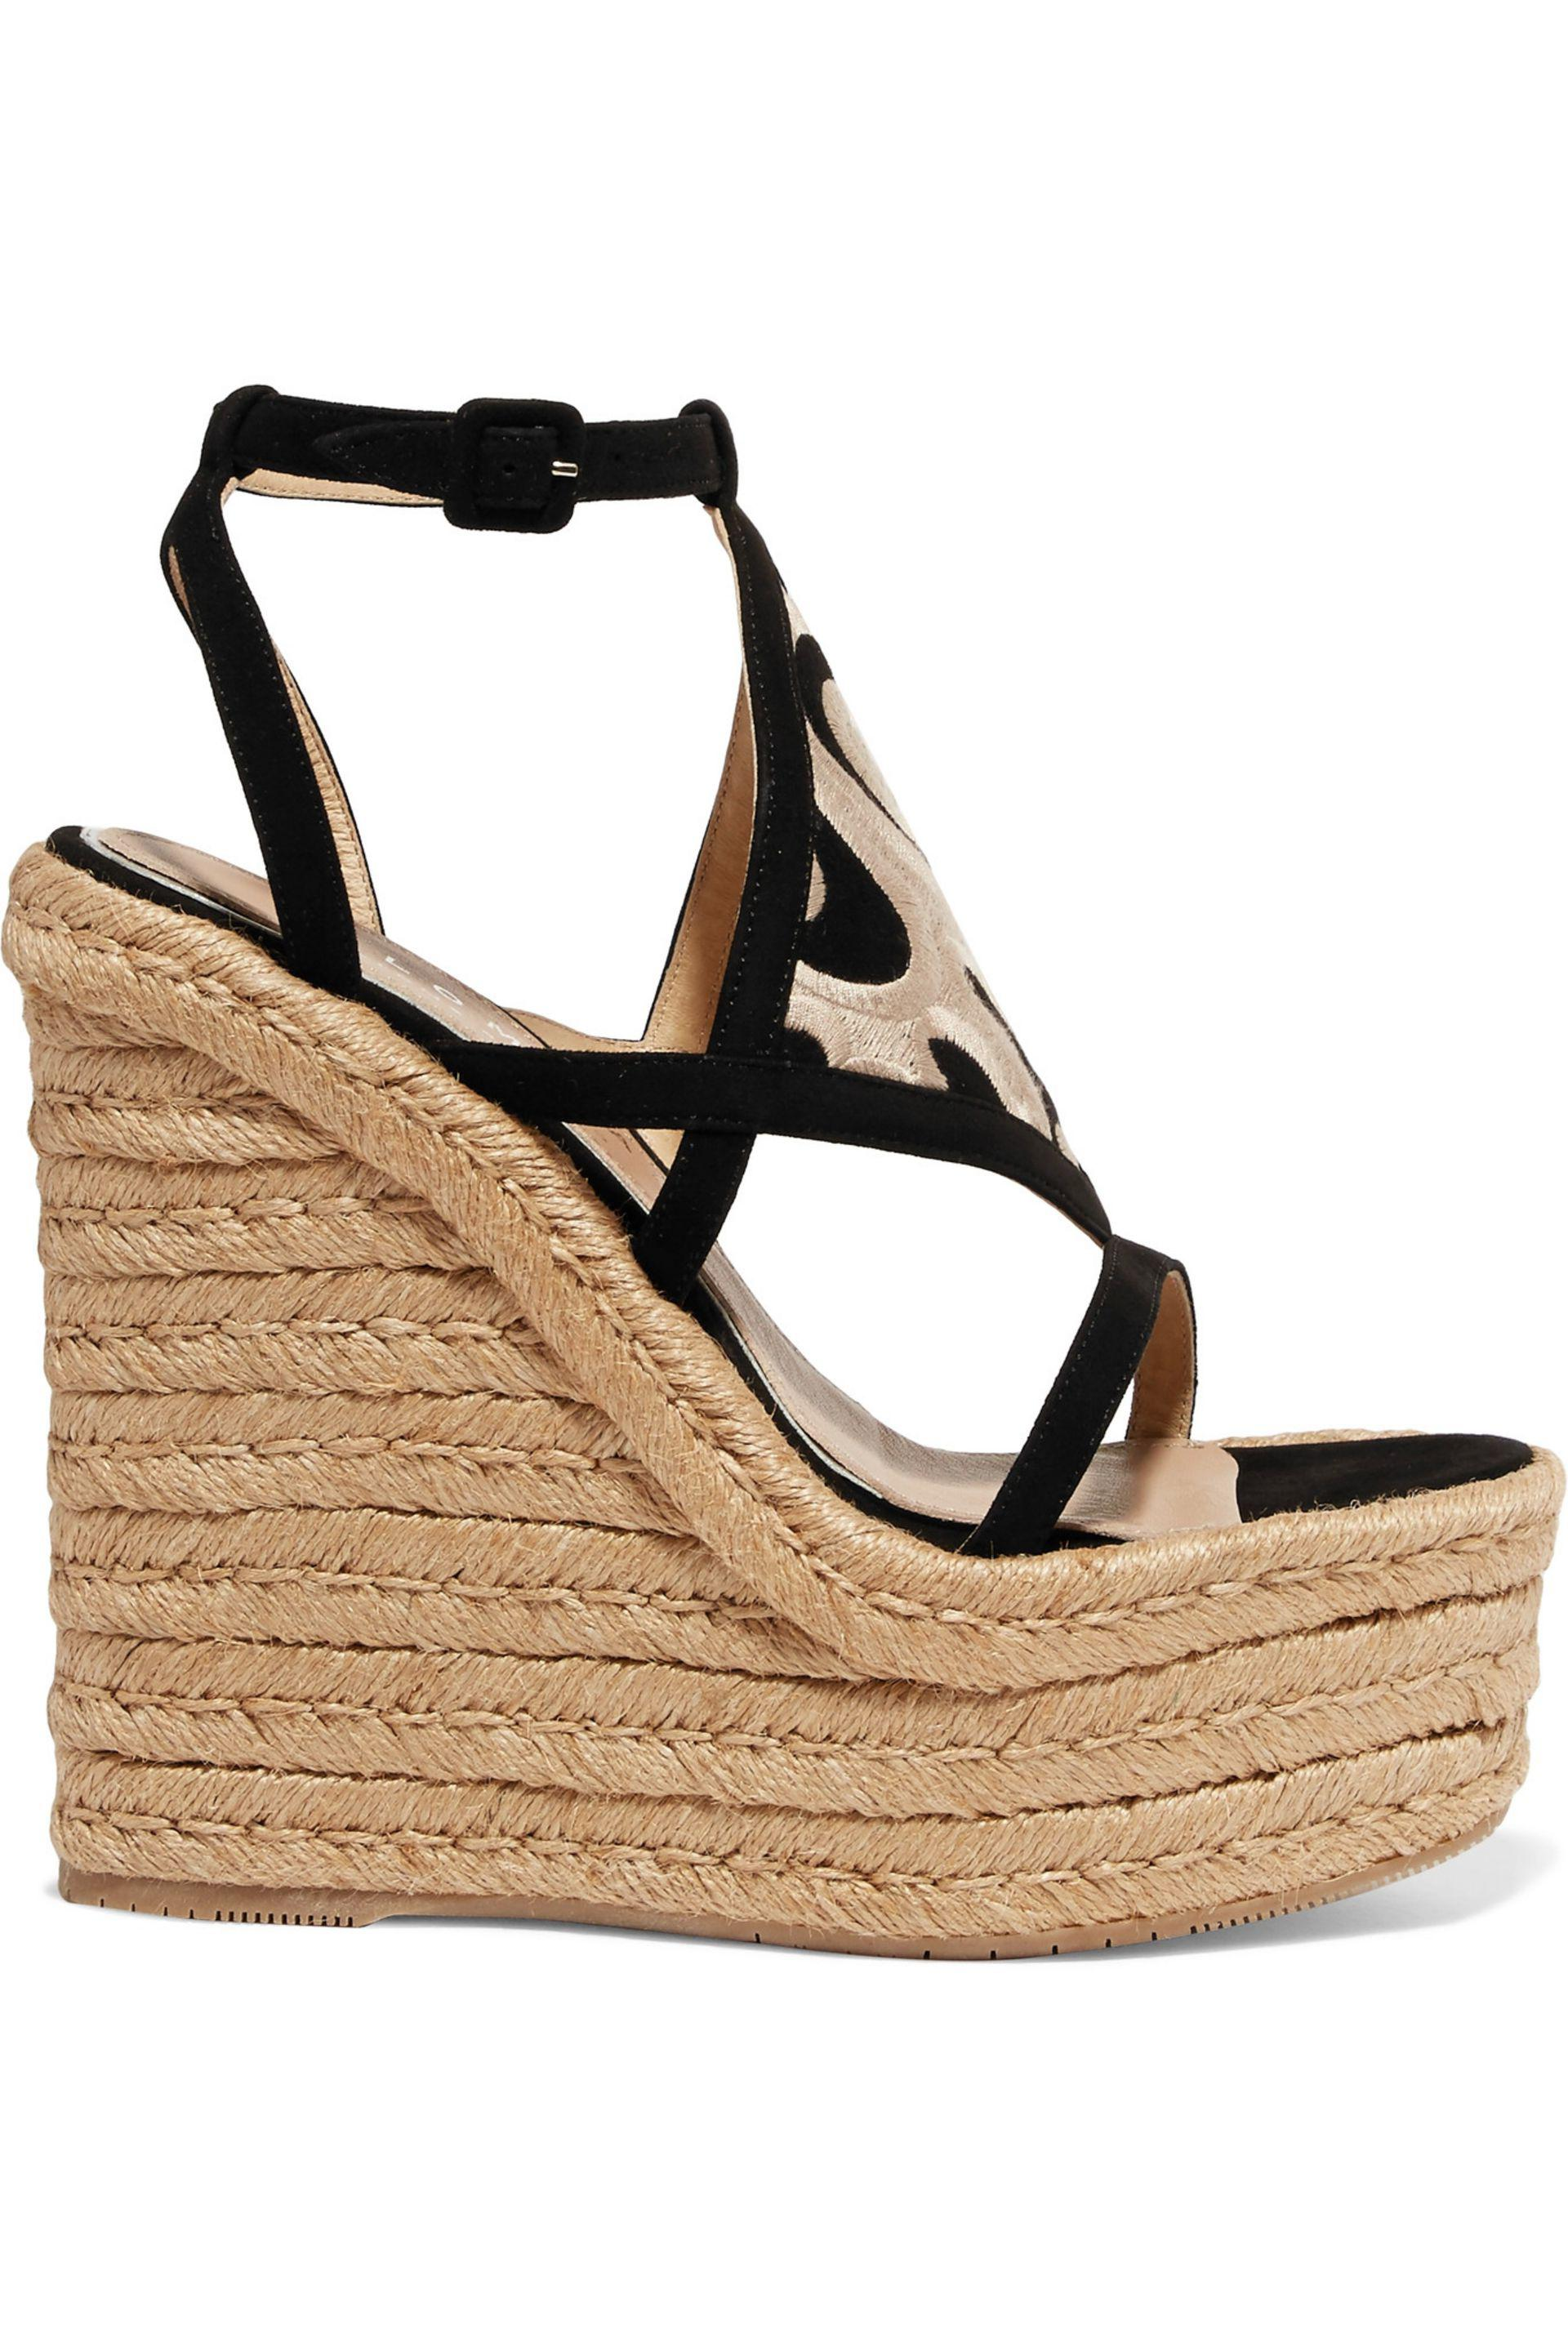 bc951bfe78f paloma-barcelo-Black-Dali-Cutout-Embroidered-Nubuck-Espadrille-Wedge-Sandals.jpeg